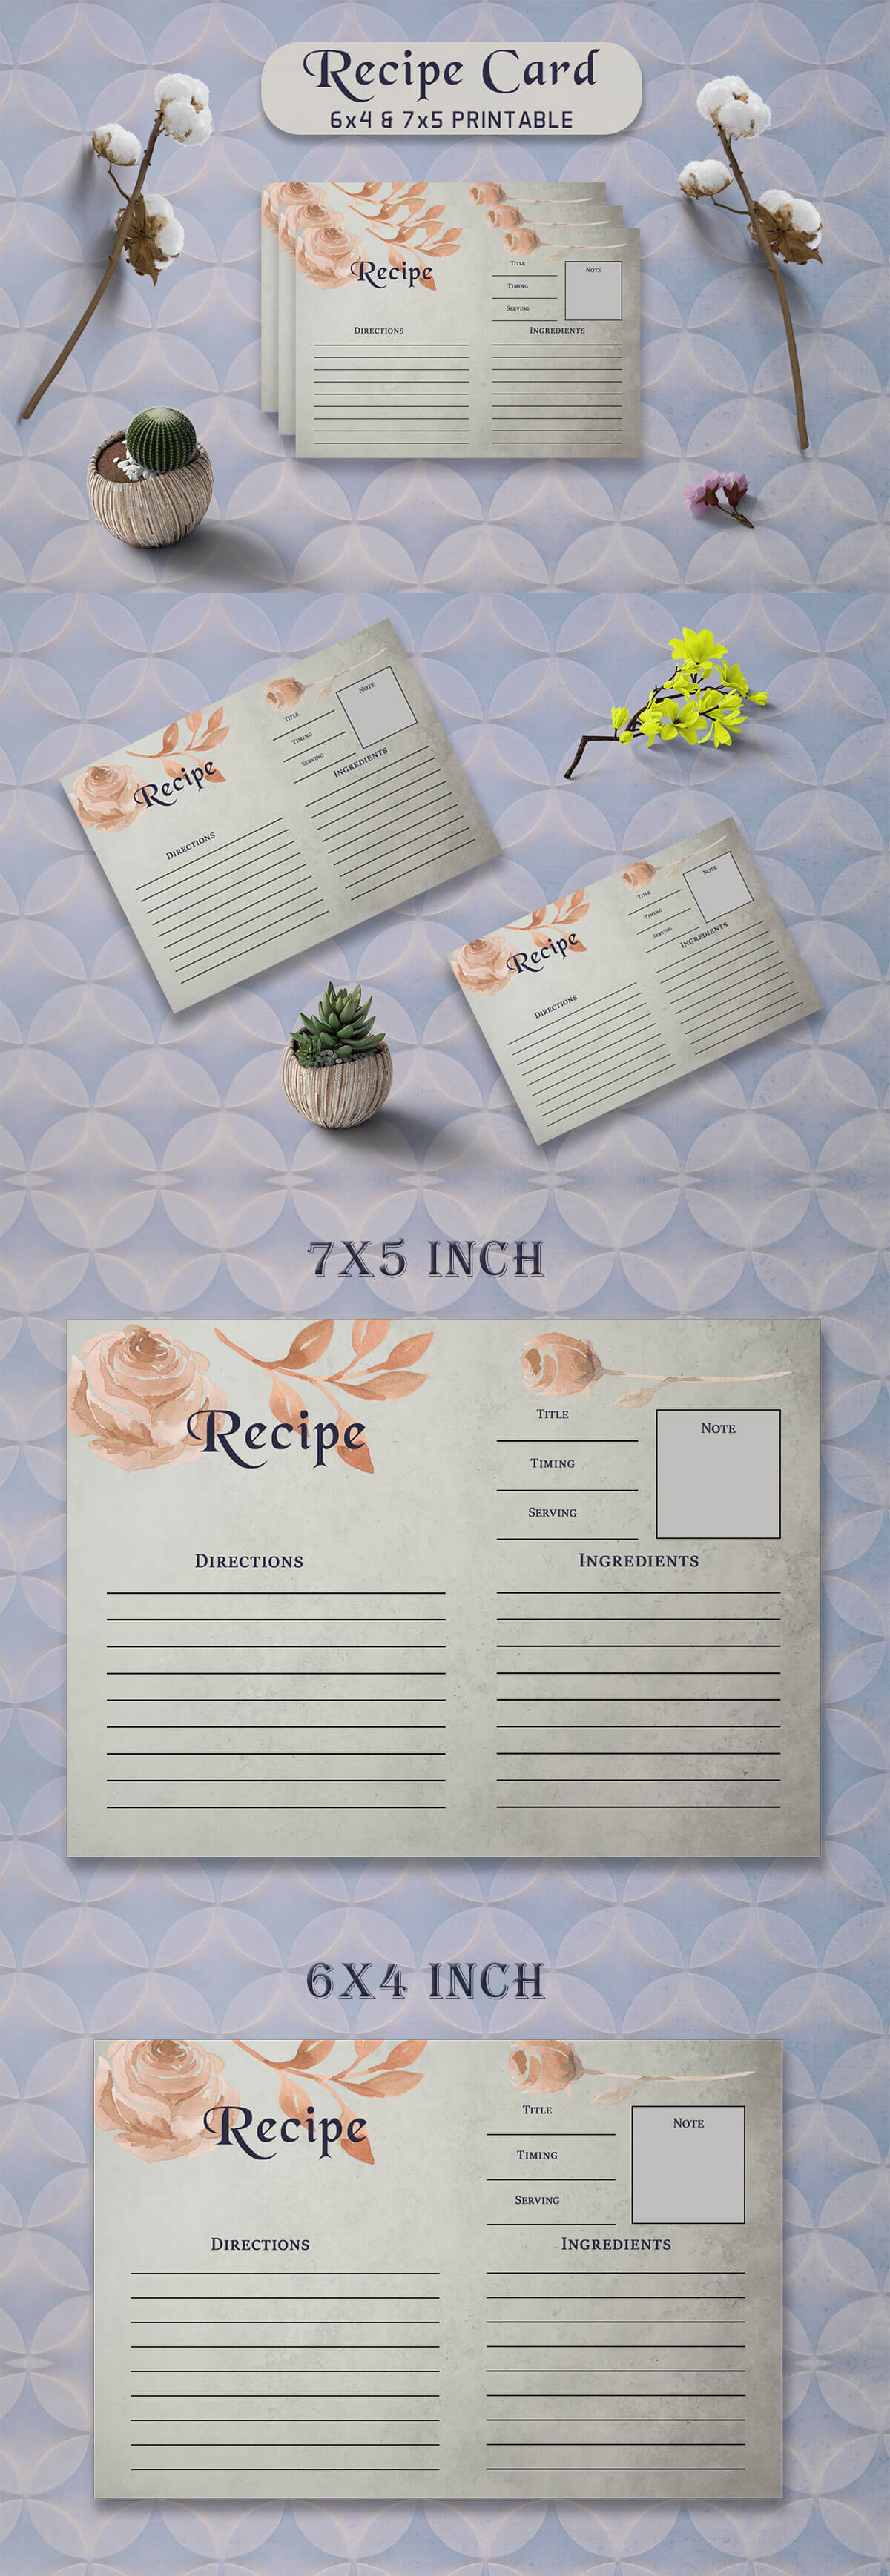 Free Brown Floral Recipe Card Template